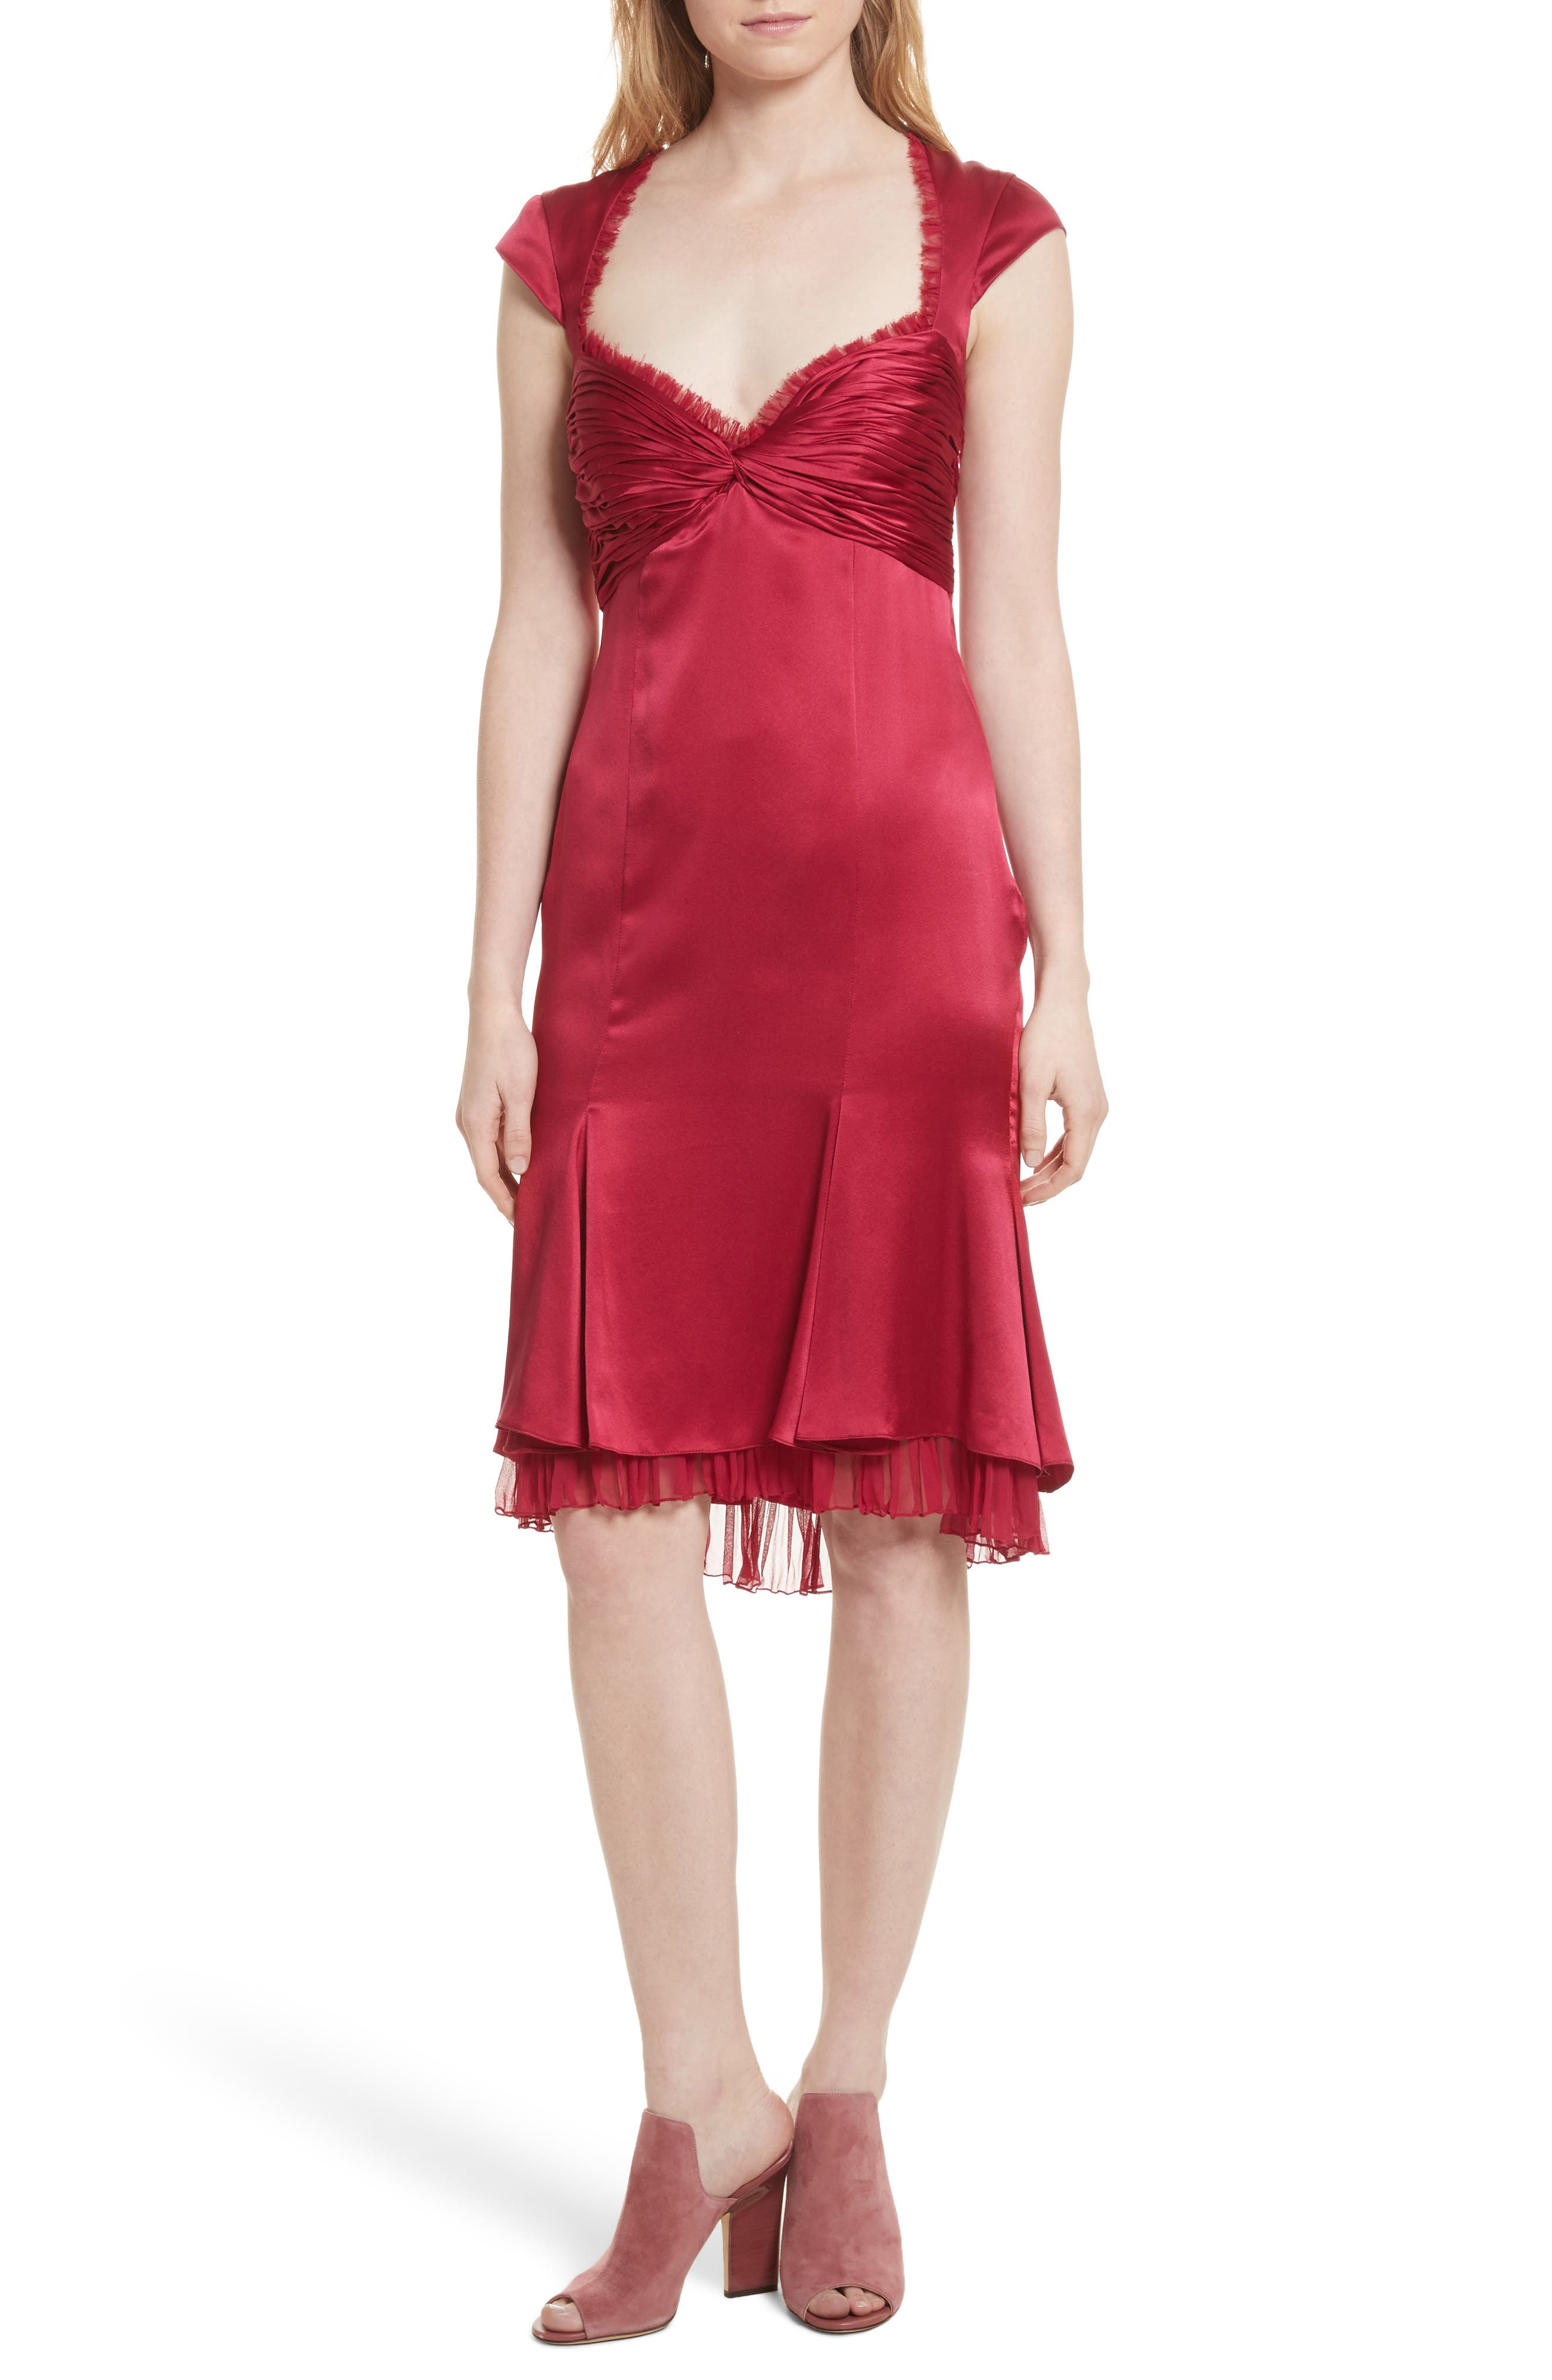 Marnie Satin Dress,                         Main,                         color, Cerise